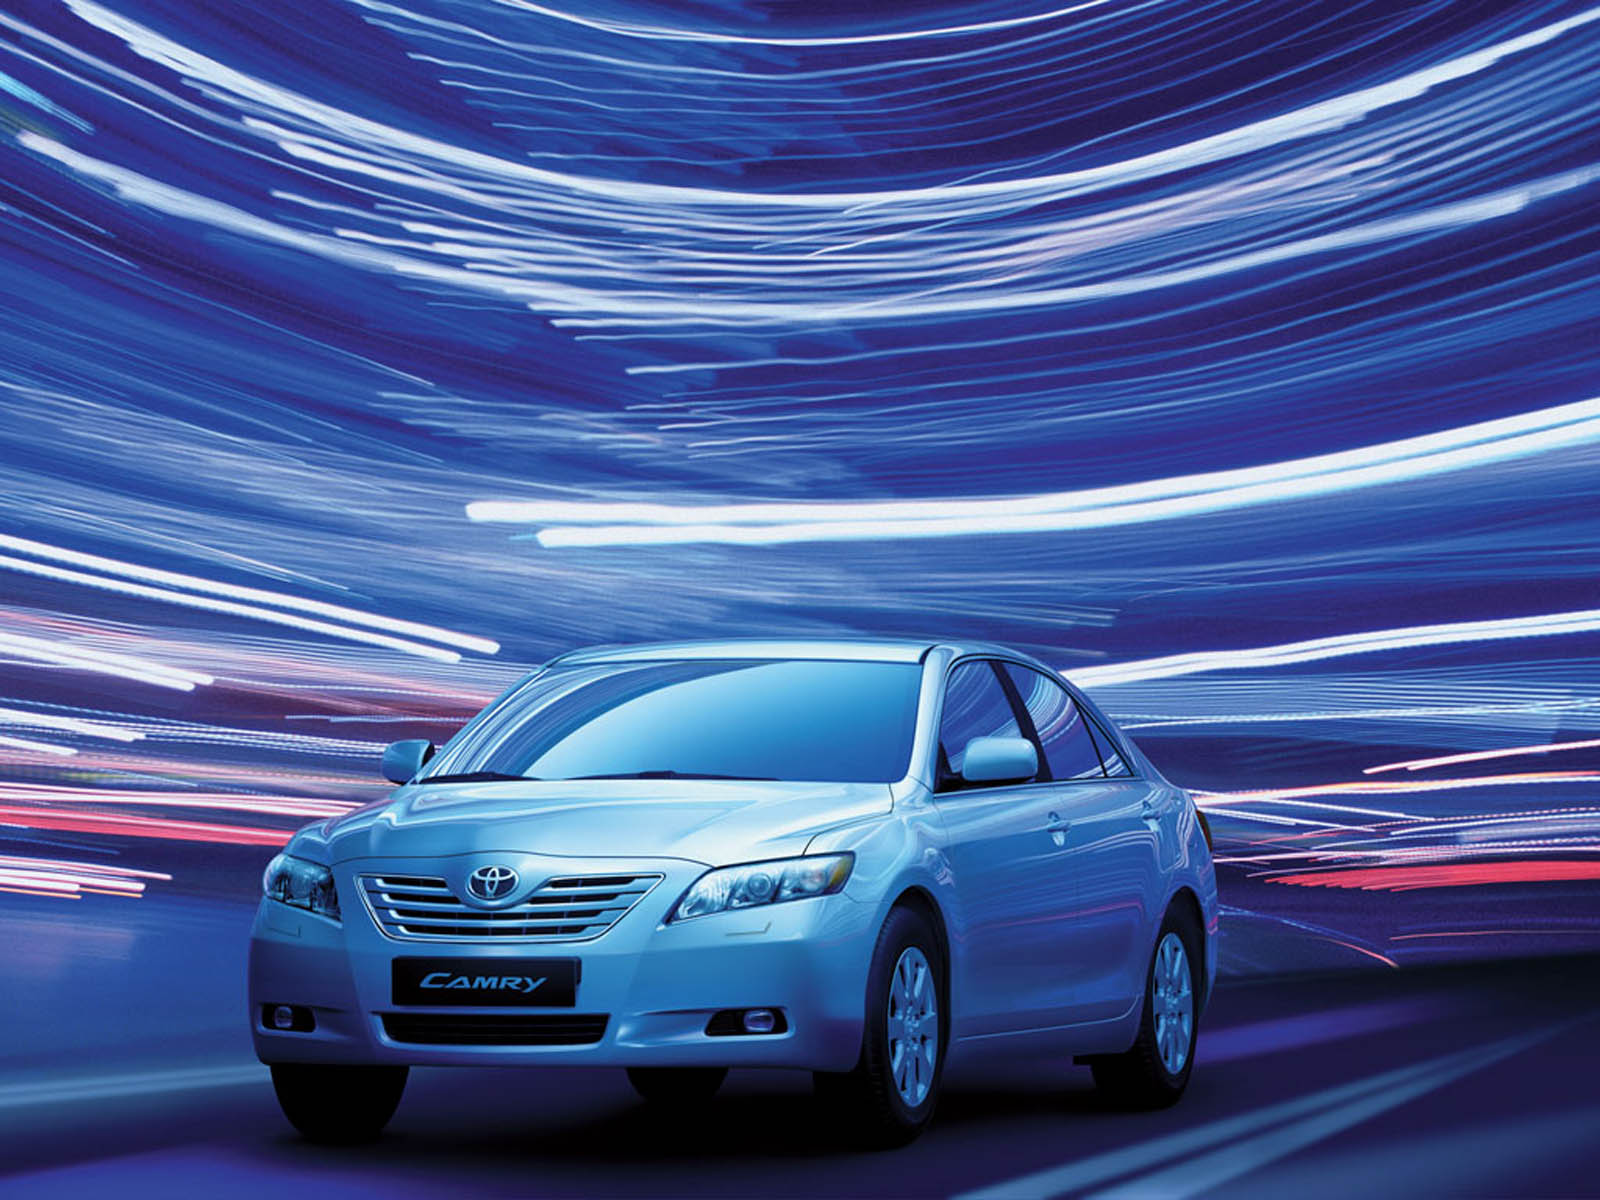 Wallpaper: Toyota Camry Car Wallpapers